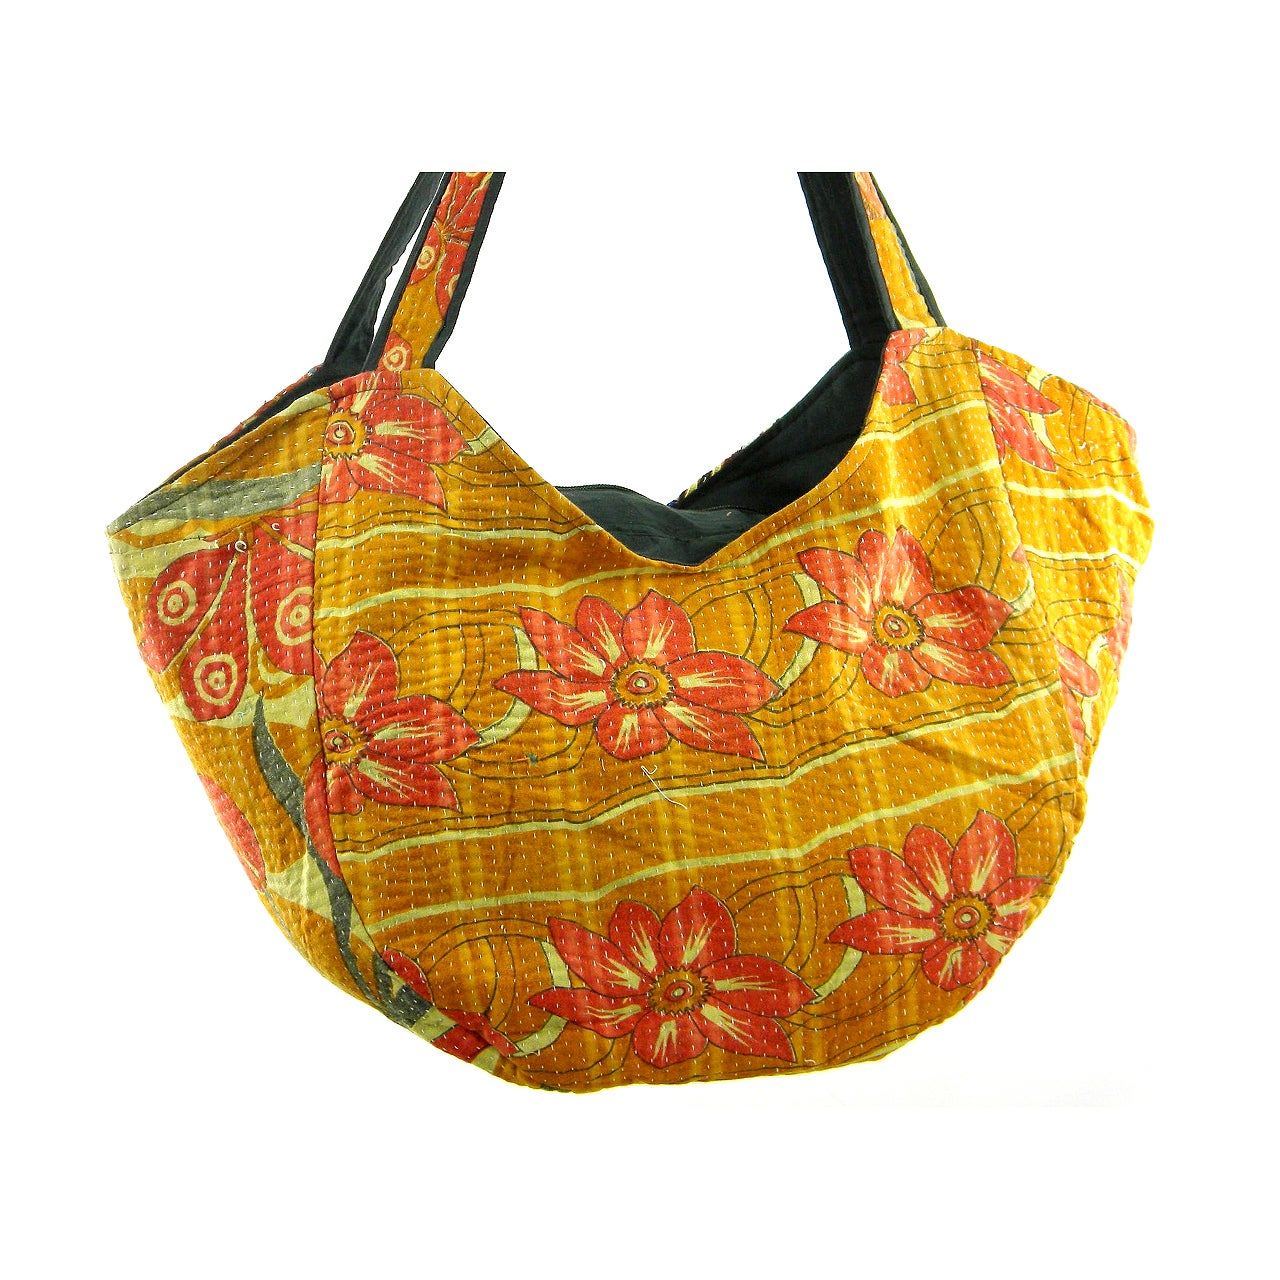 d3396ca043 Shop Handmade Cotton Stich Traditional Banjara Hobo Bag (India) - Free  Shipping Today - Overstock - 7879359